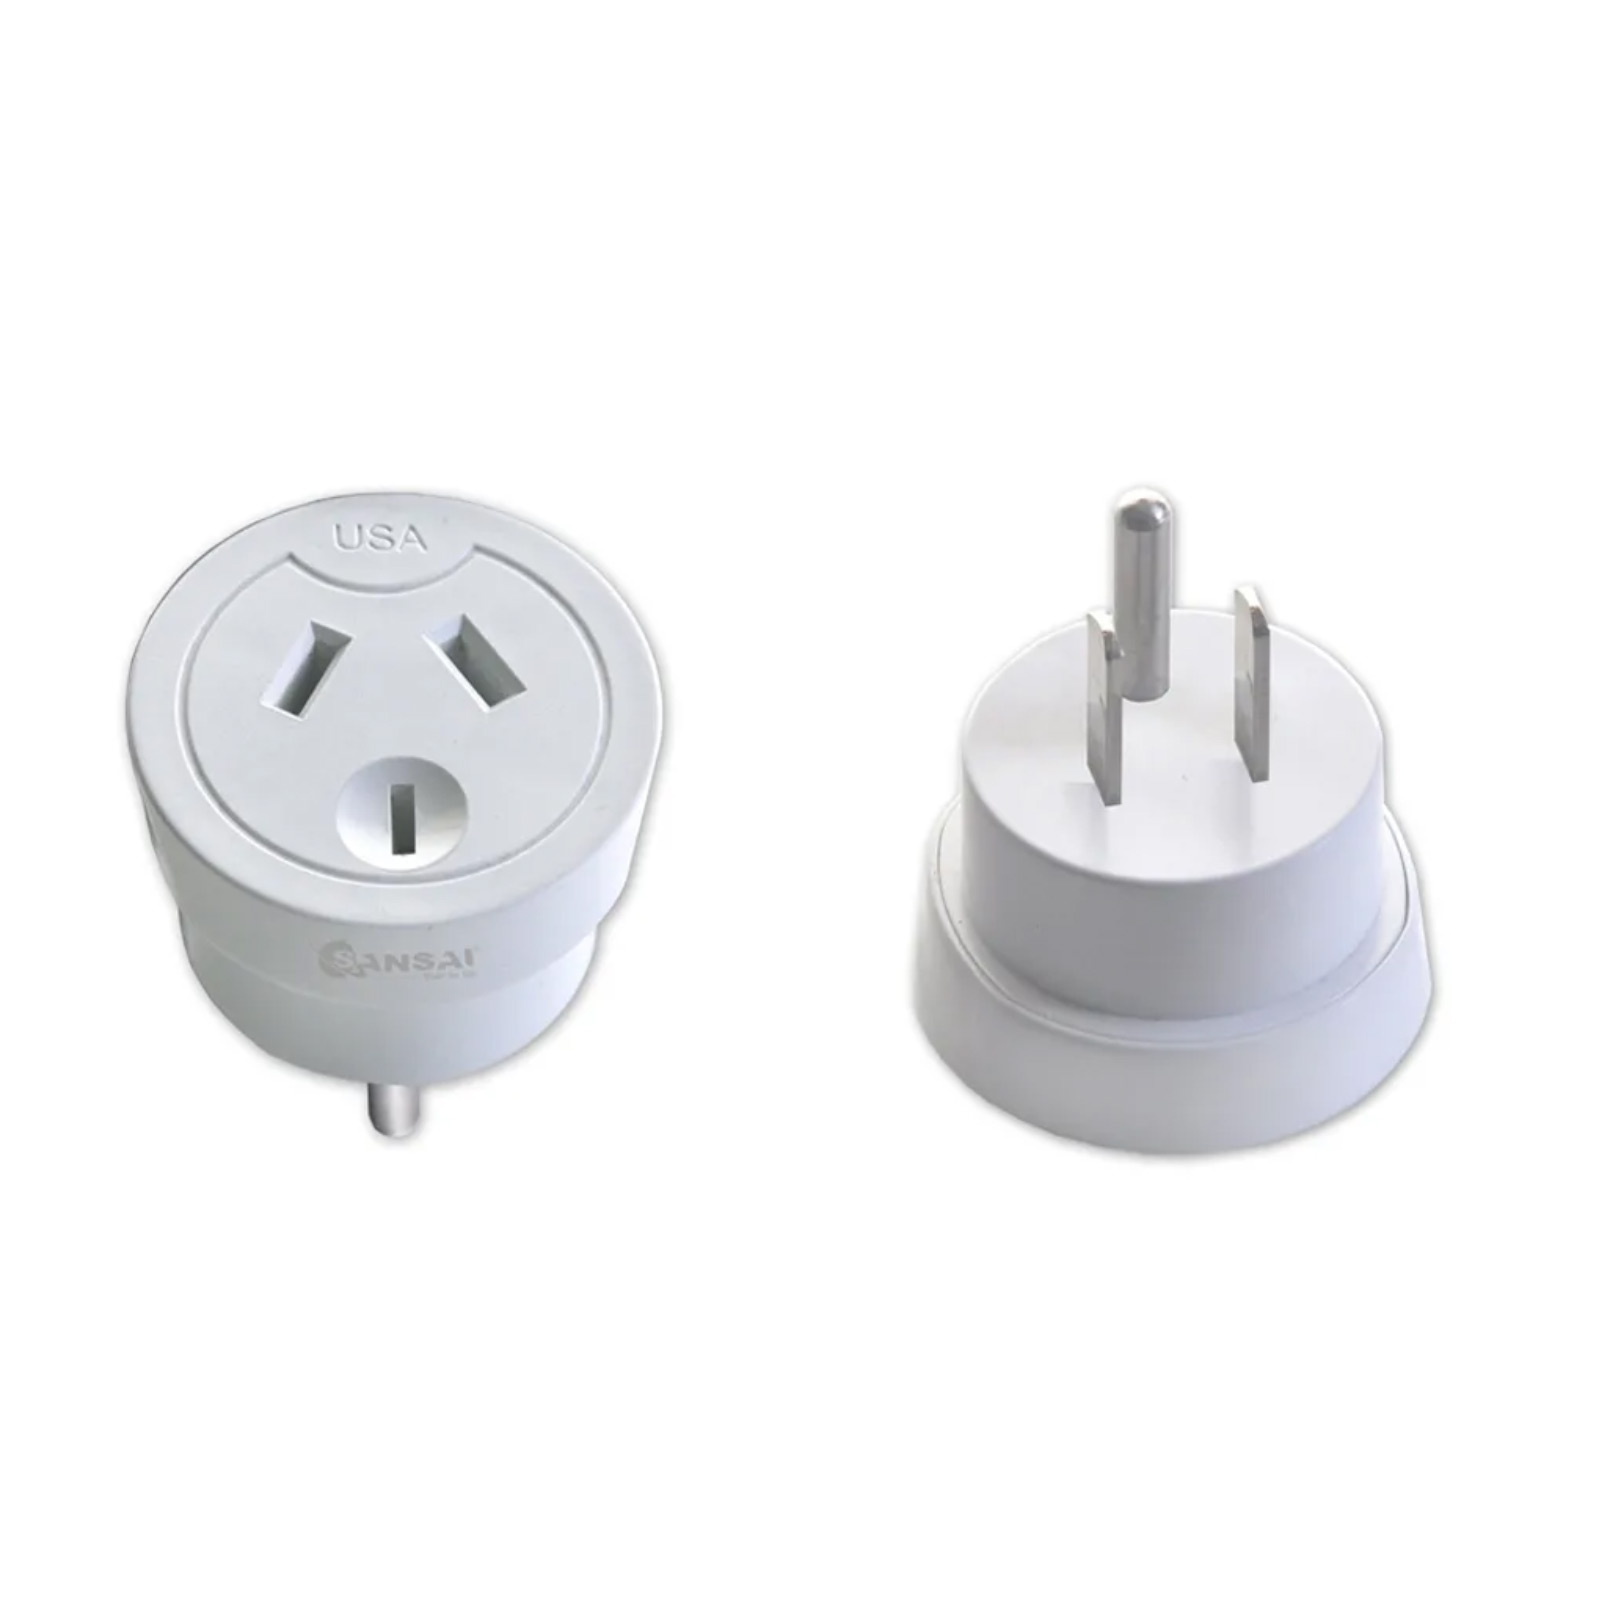 Sansai Travel Adaptor Australia/NZ to USA